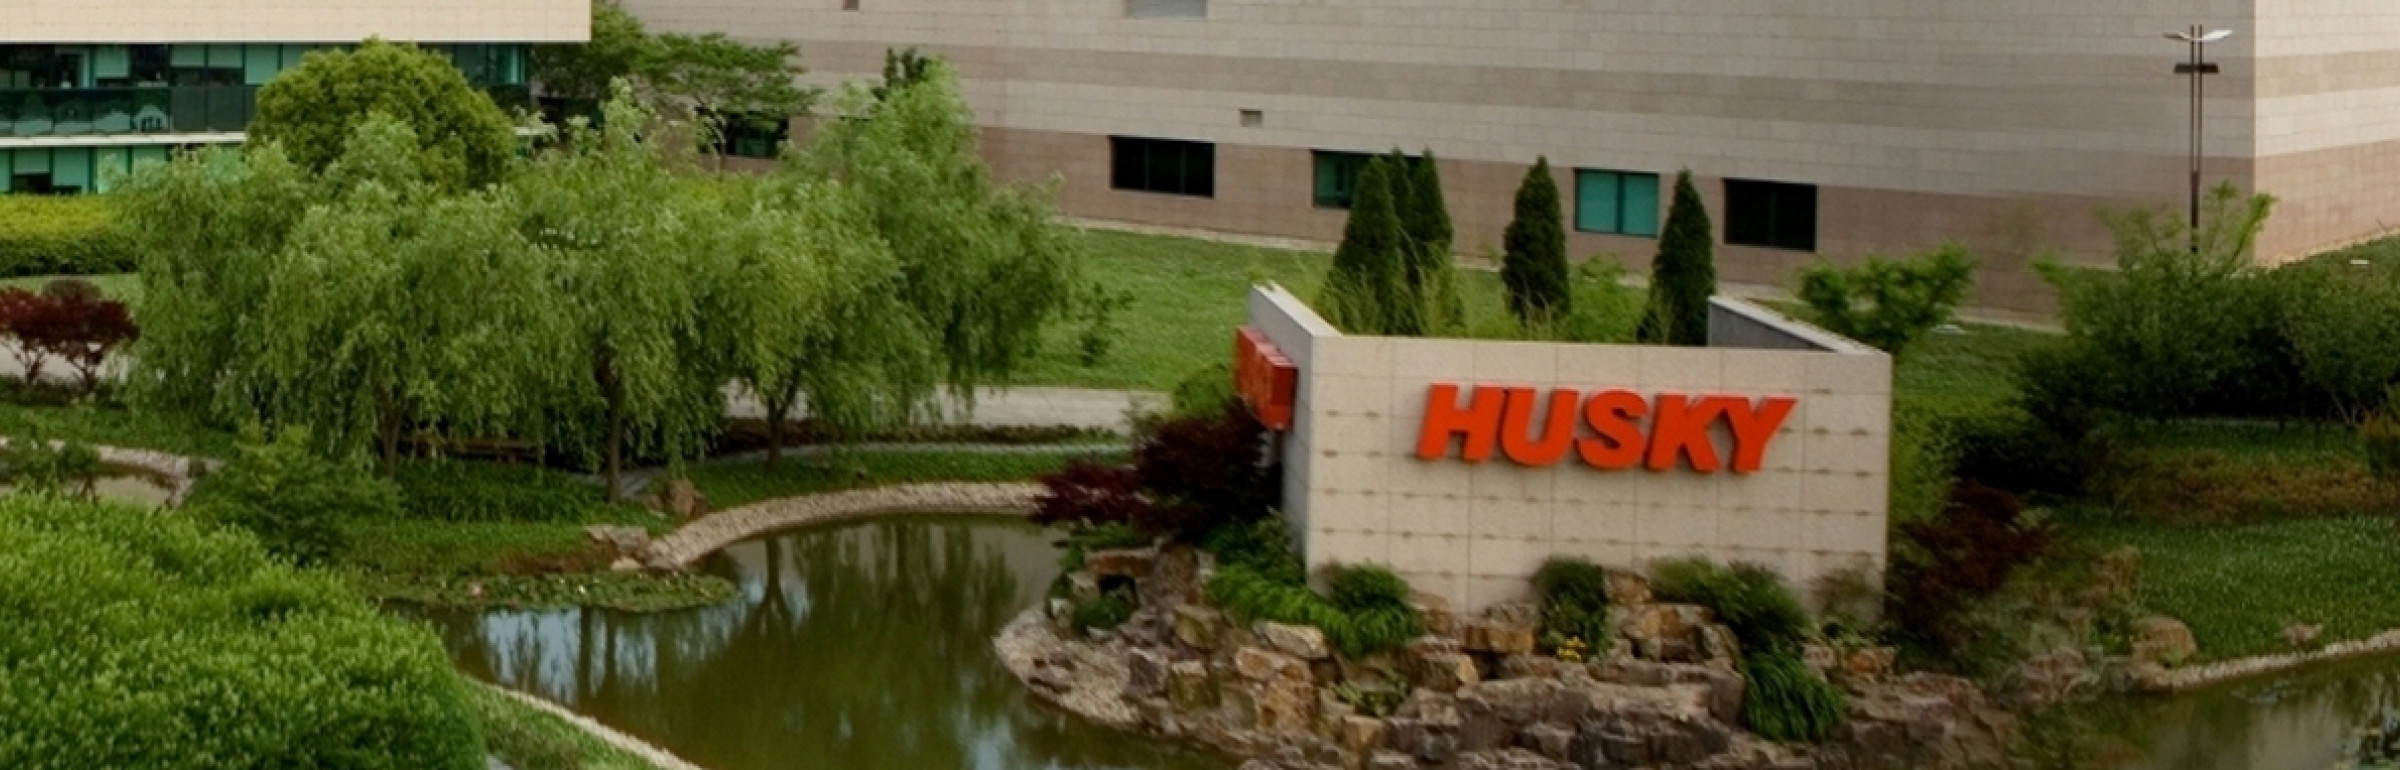 Banner Husky Injection Molding Systems S.A.